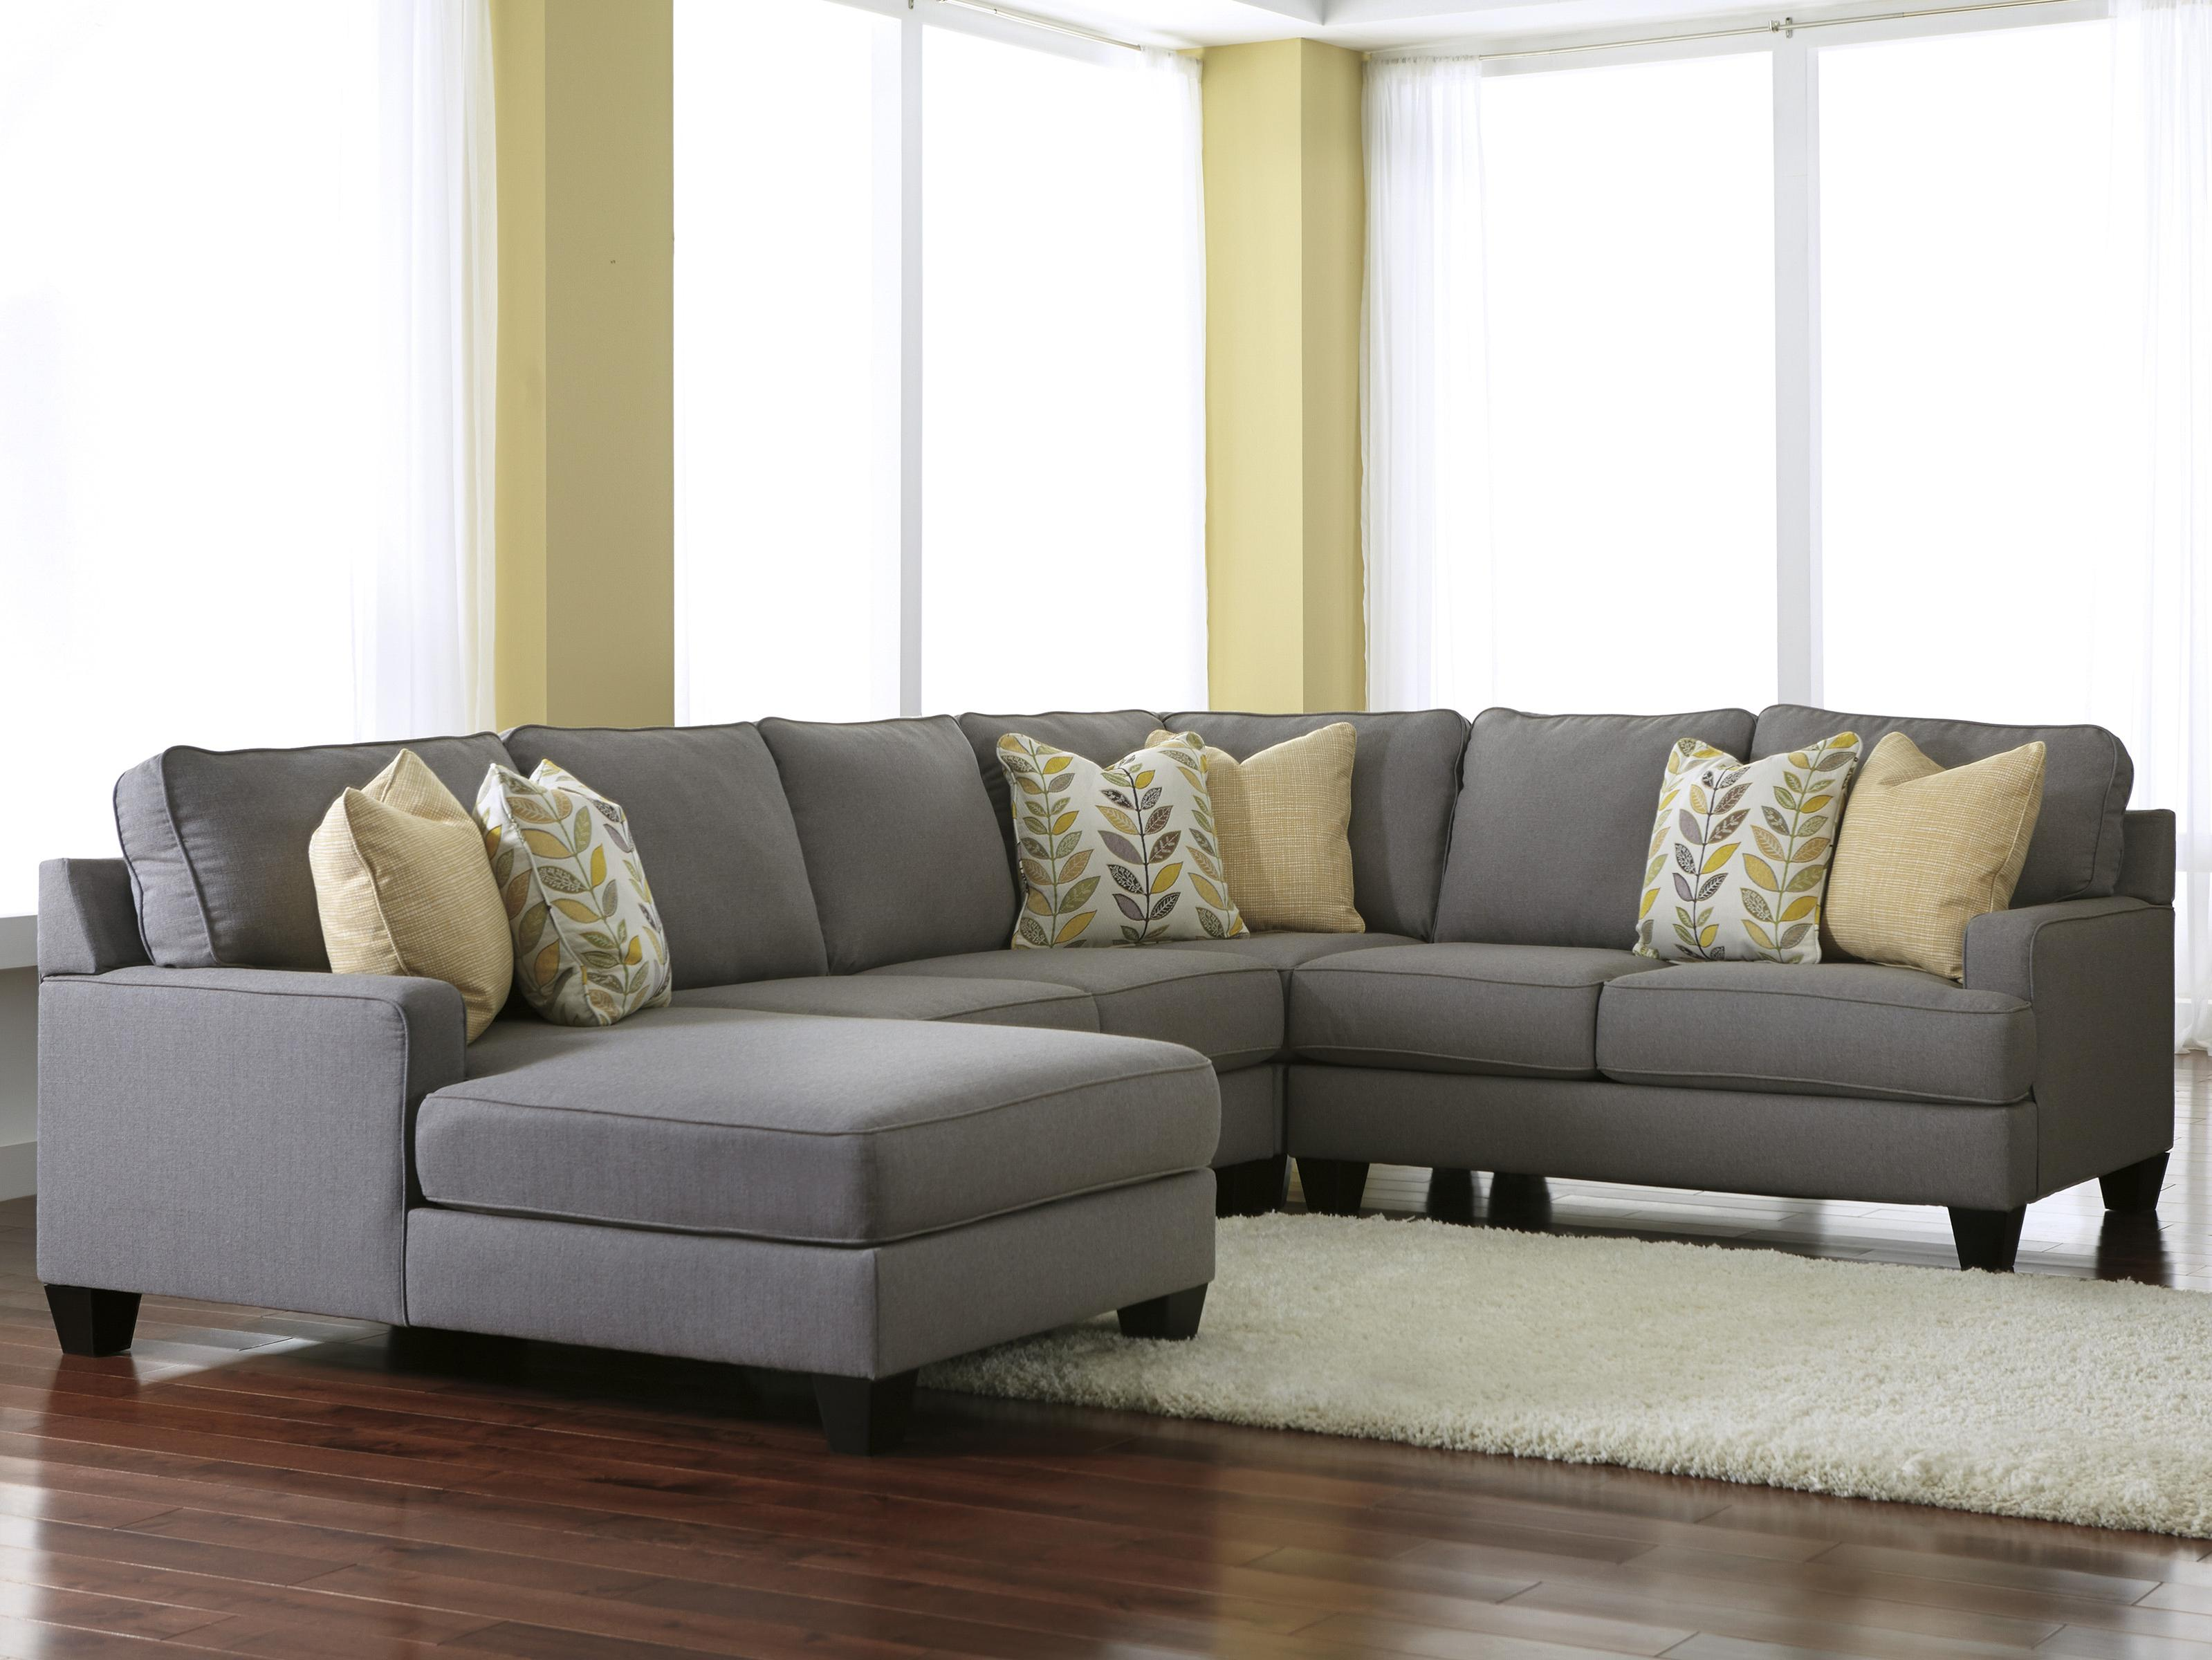 Sectional Corner Couch Chamberly Alloy Modern 4 Piece Sectional Sofa With Left Chaise Reversible Seat Cushions By Signature Design By Ashley At Household Furniture